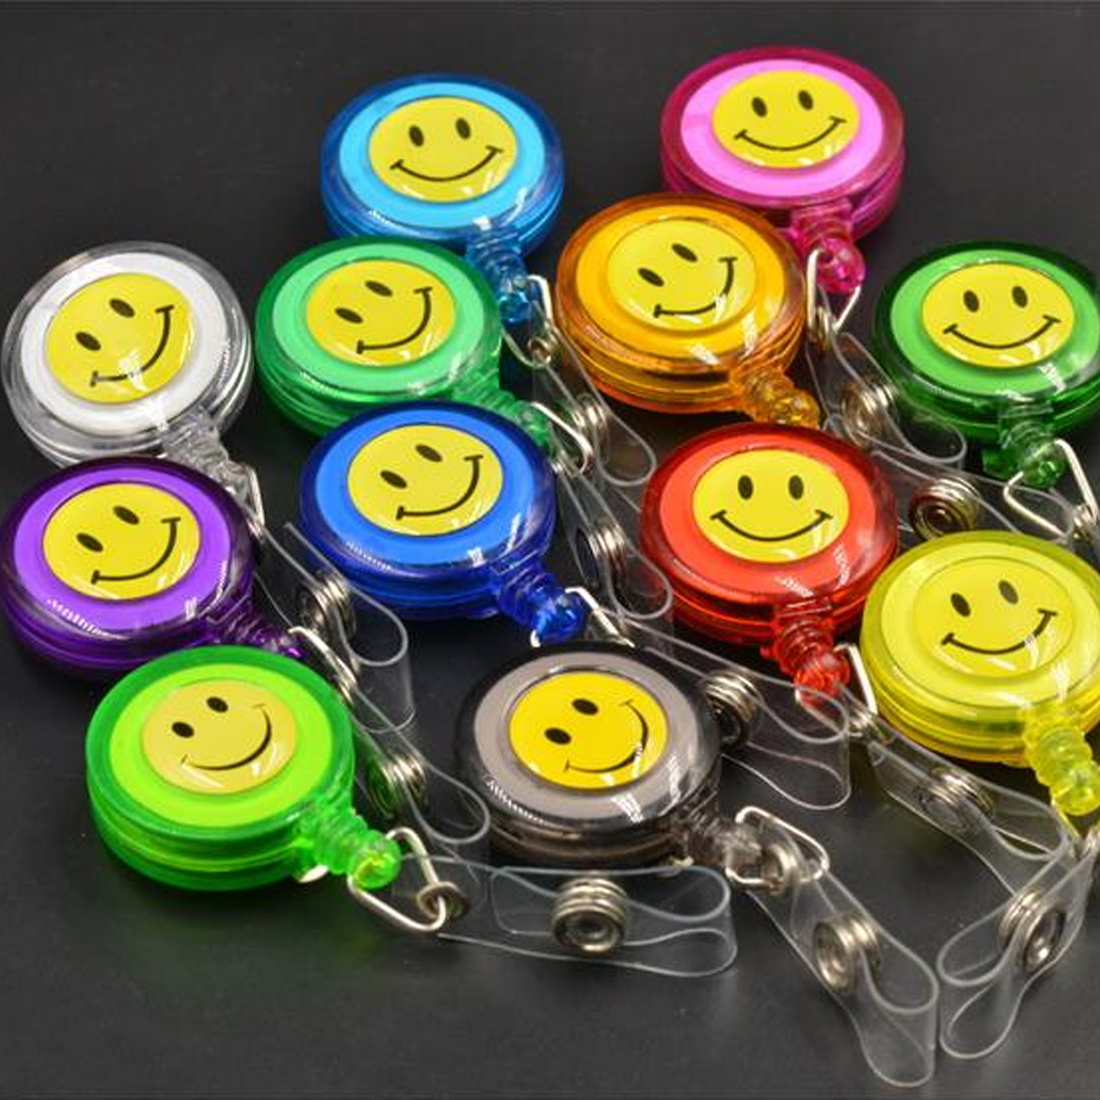 FangNymph Compact Design Smiling Face ID Holder Name Tag Card Key Badge Holder Retractable Round Solid Translucent ID Holder